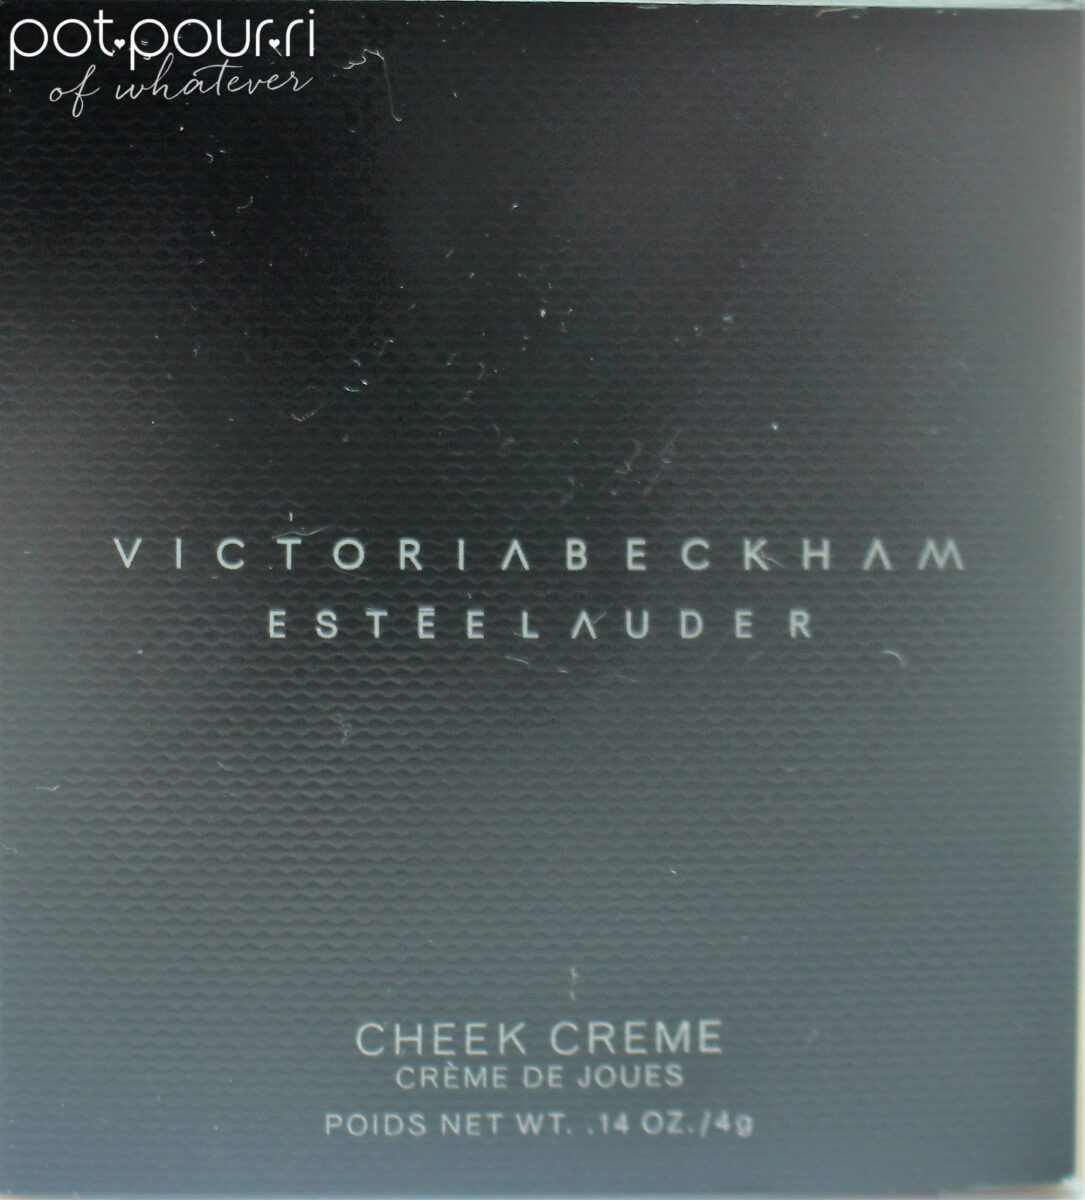 cheek creme is packaged  a sophisticated black box with white block printing